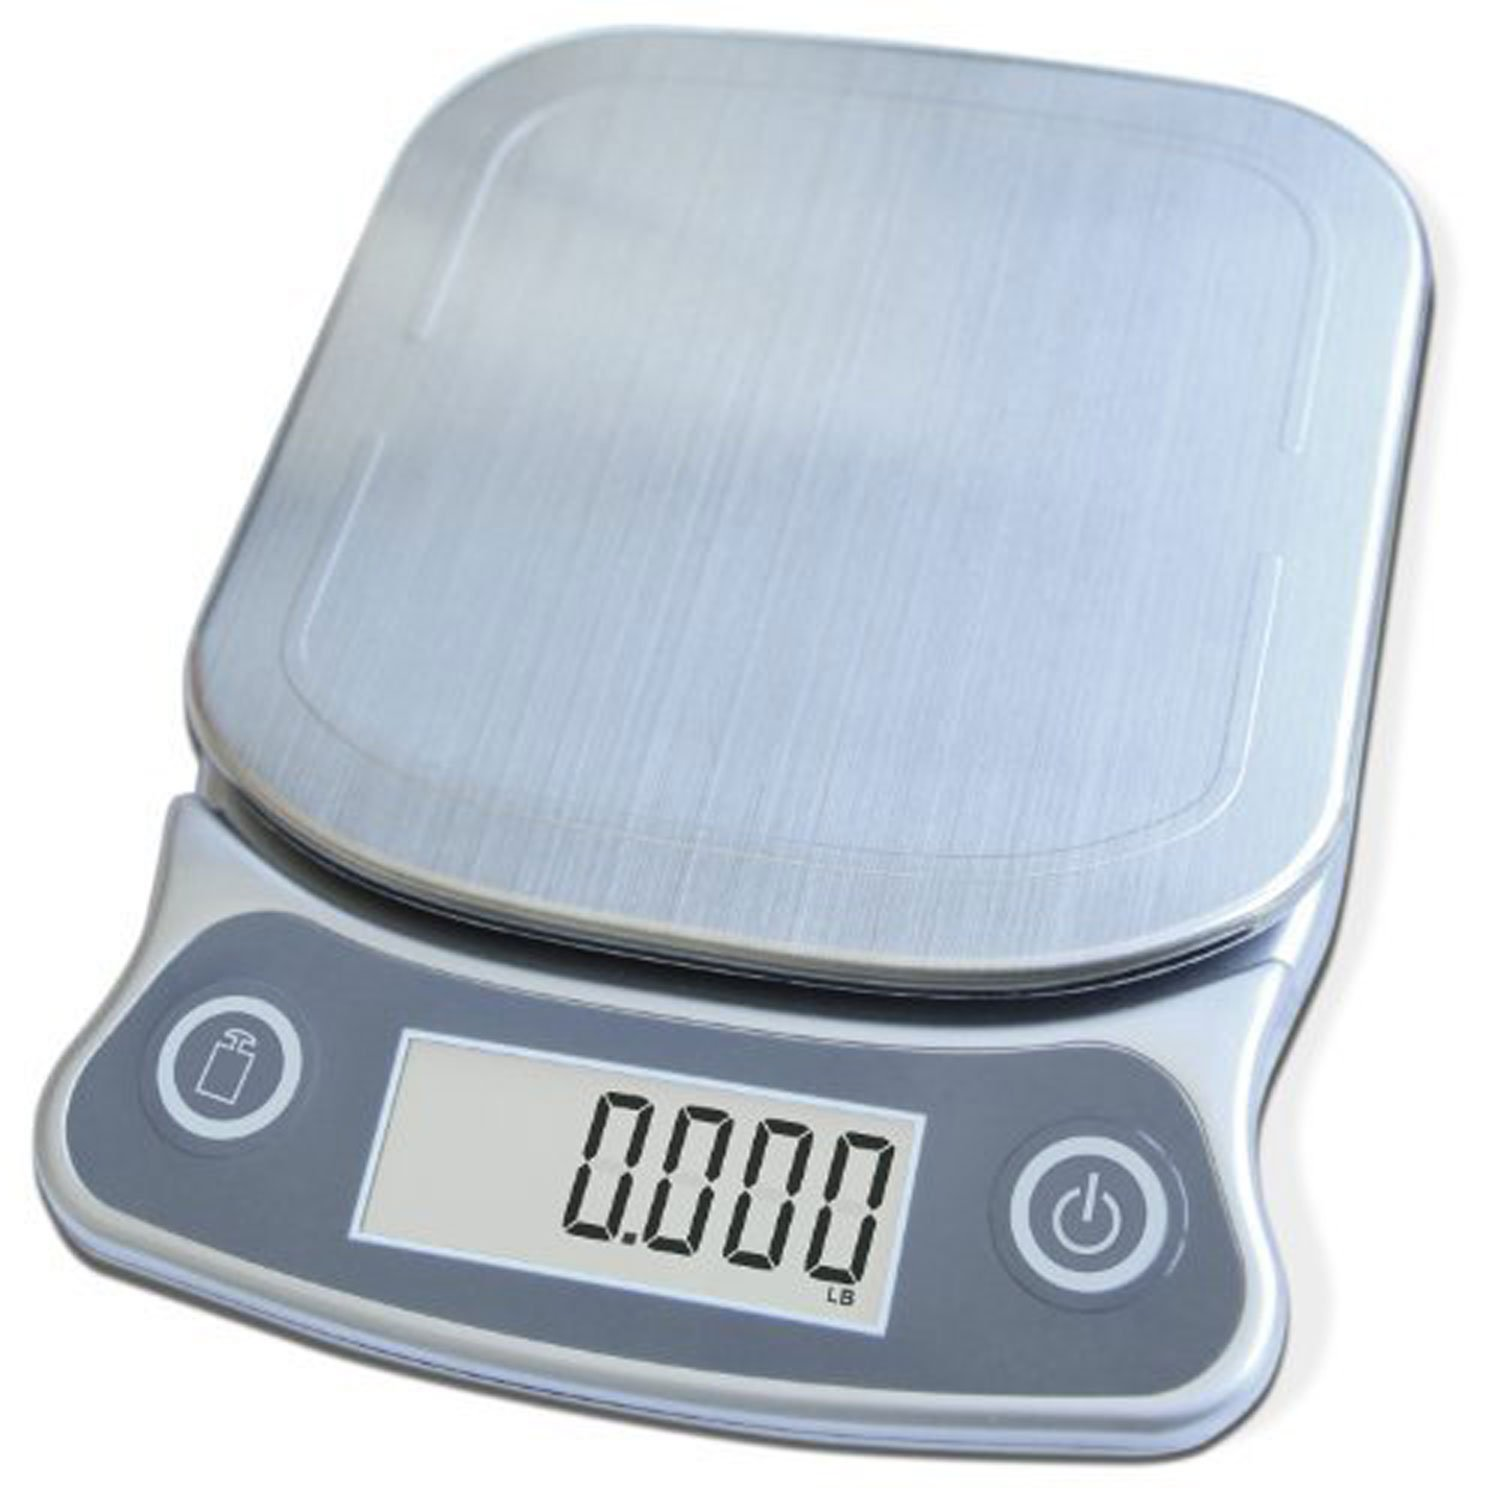 EatSmart ESKS-10 Precision Elite Scale-15 lb. Capacity, UltraBright Display and Stai Digital Kitchen Scale, One, Silver by EatSmart